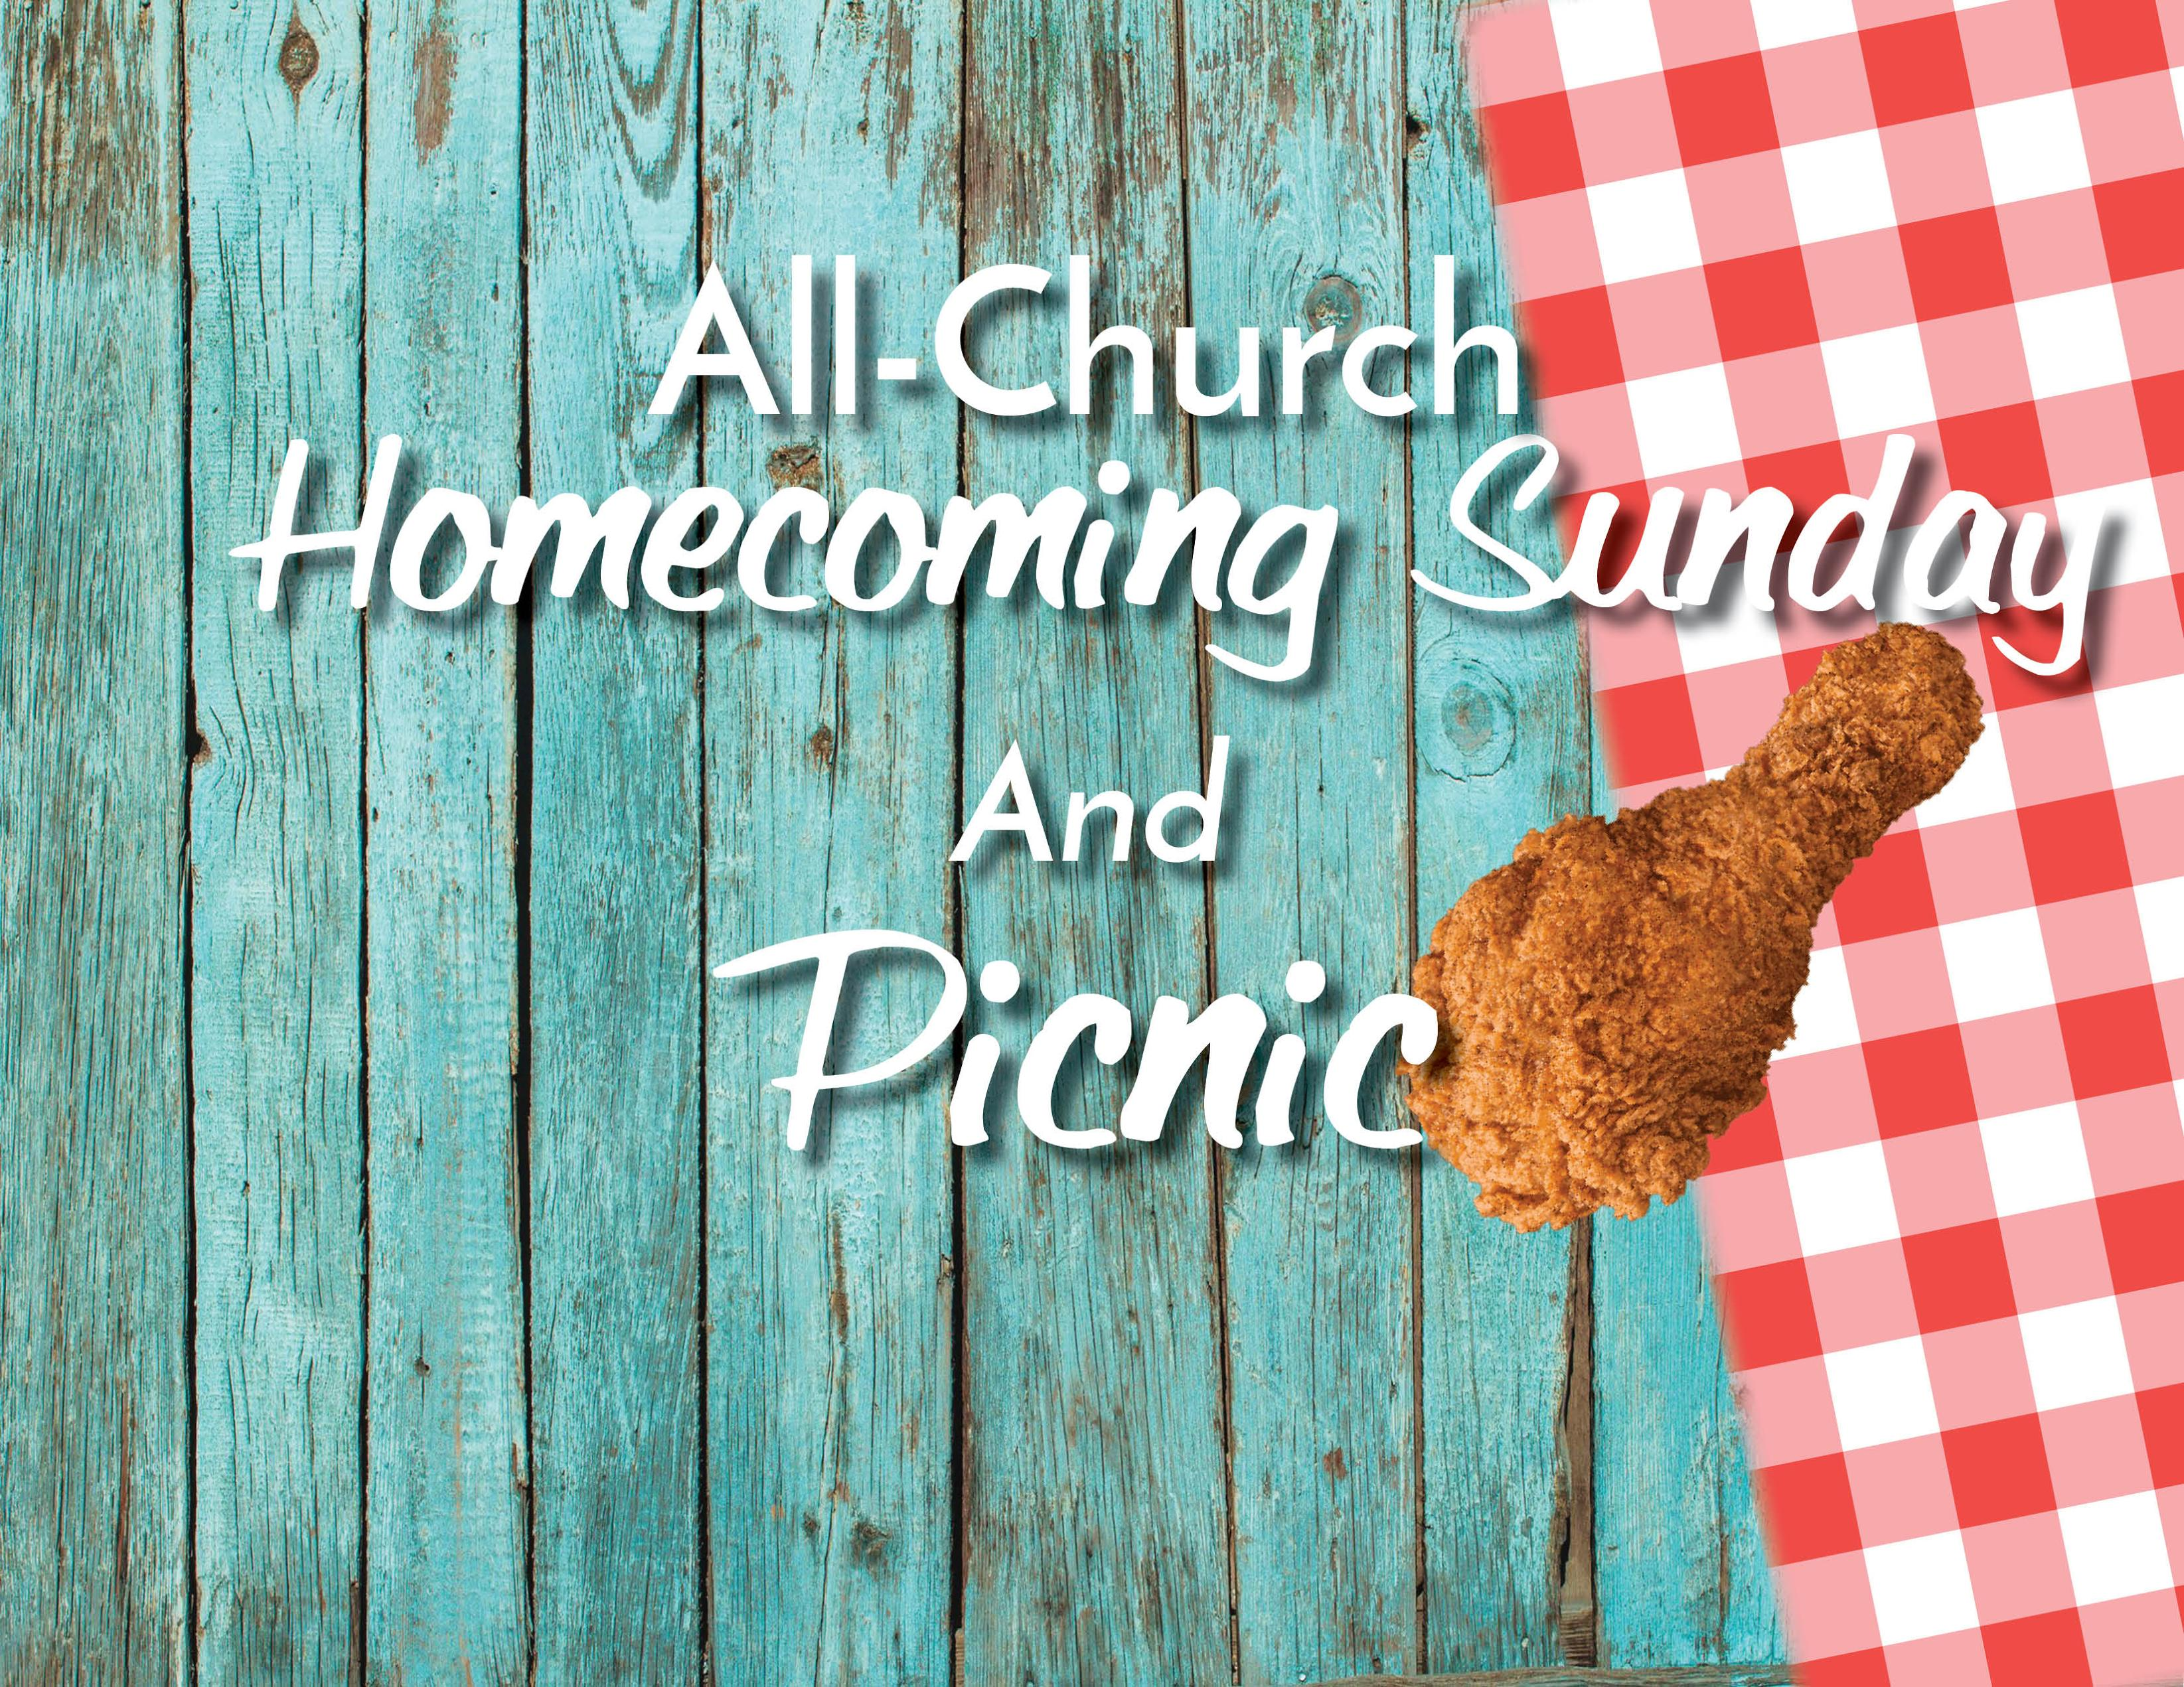 All Church Homecoming Sunday and Welcome Back Picnic